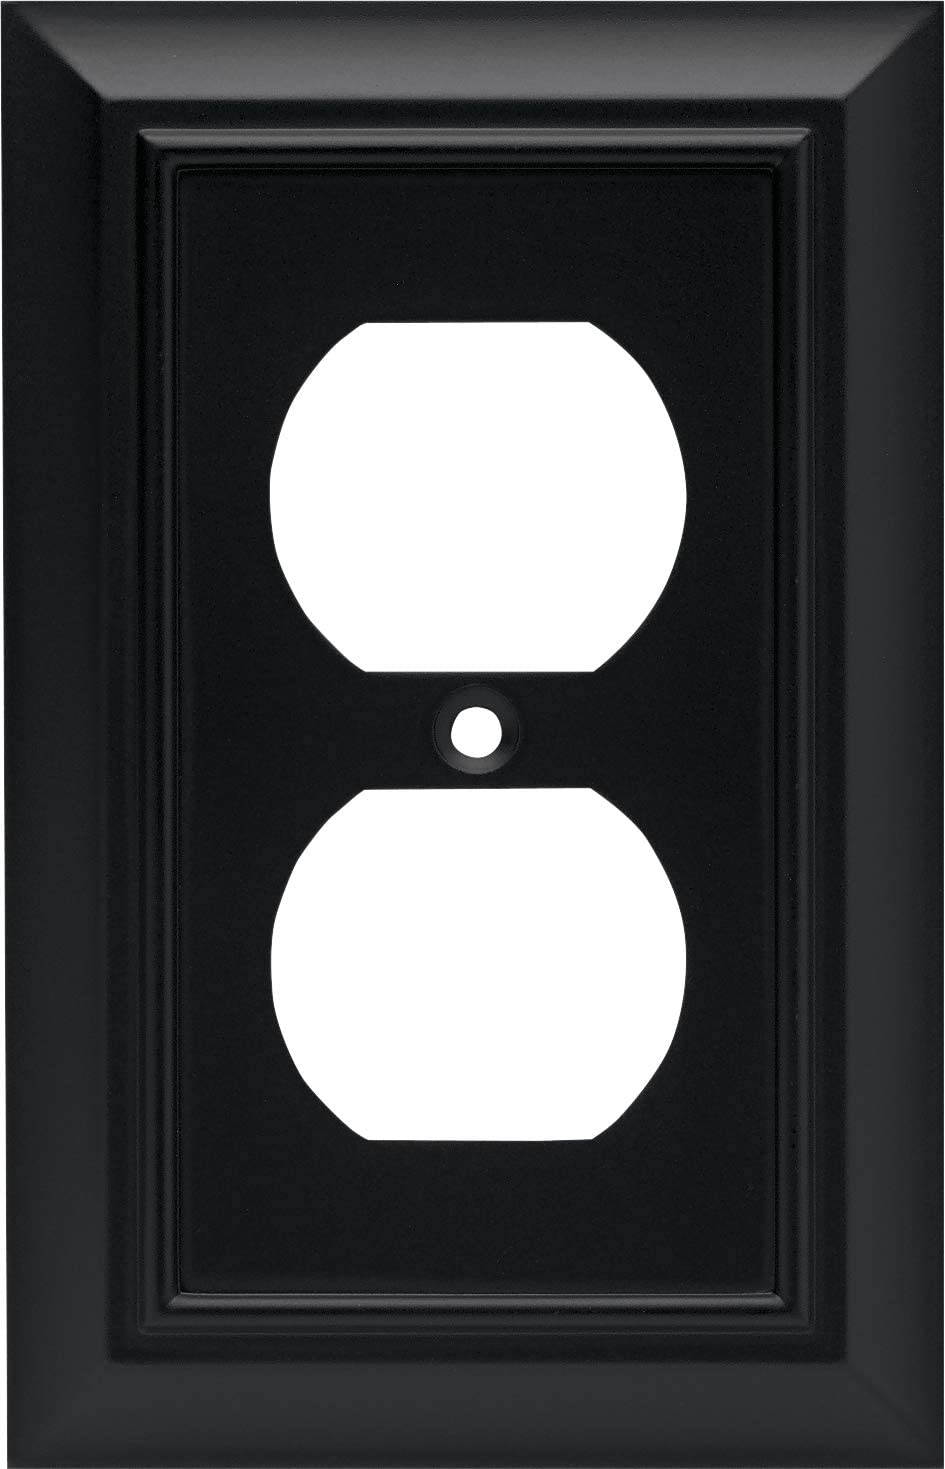 Architectural Single Duplex Outlet Wall Plate Switch Plate Cover Flat Black Packaging May Vary Black Light Switch Cover Amazon Com